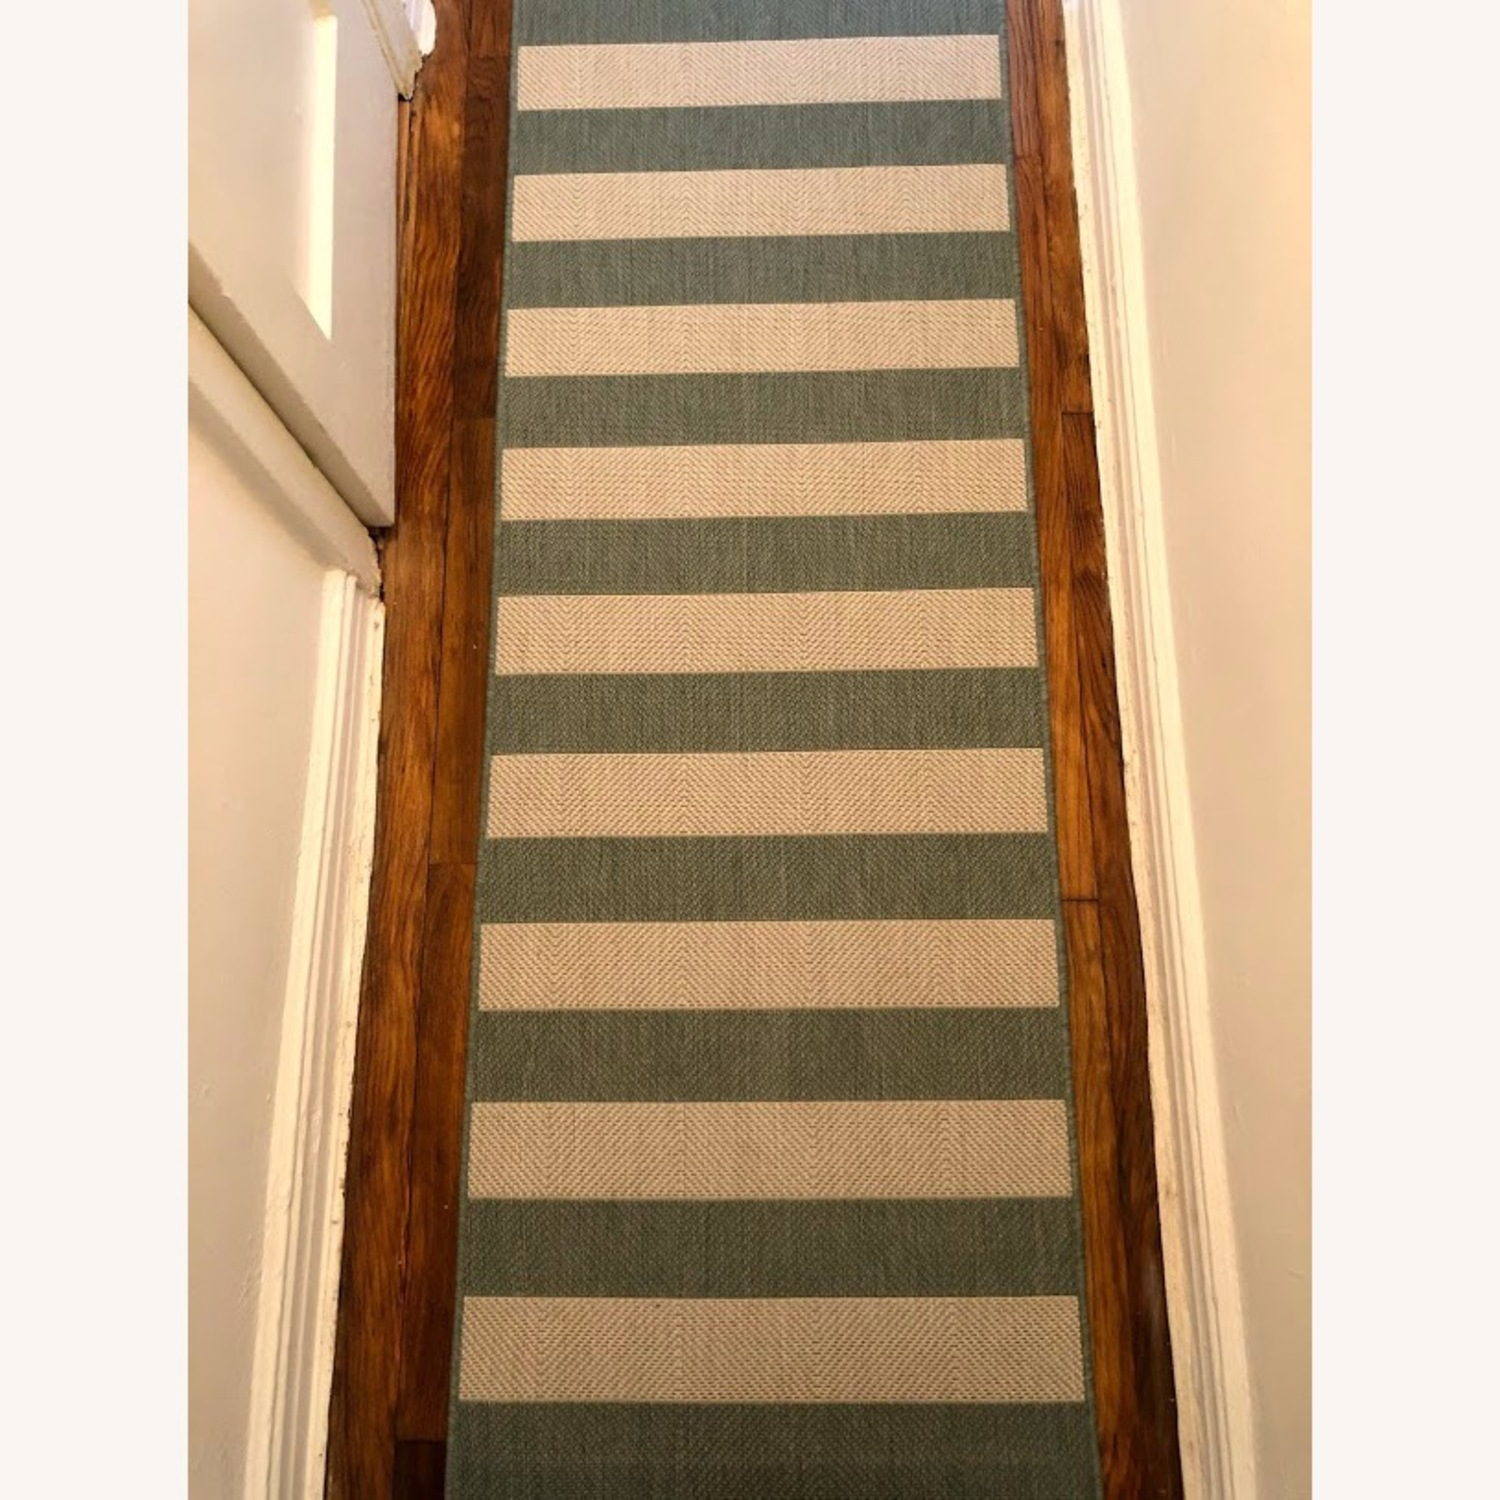 Blue and White Striped 7-Foot Runner Rug - image-3